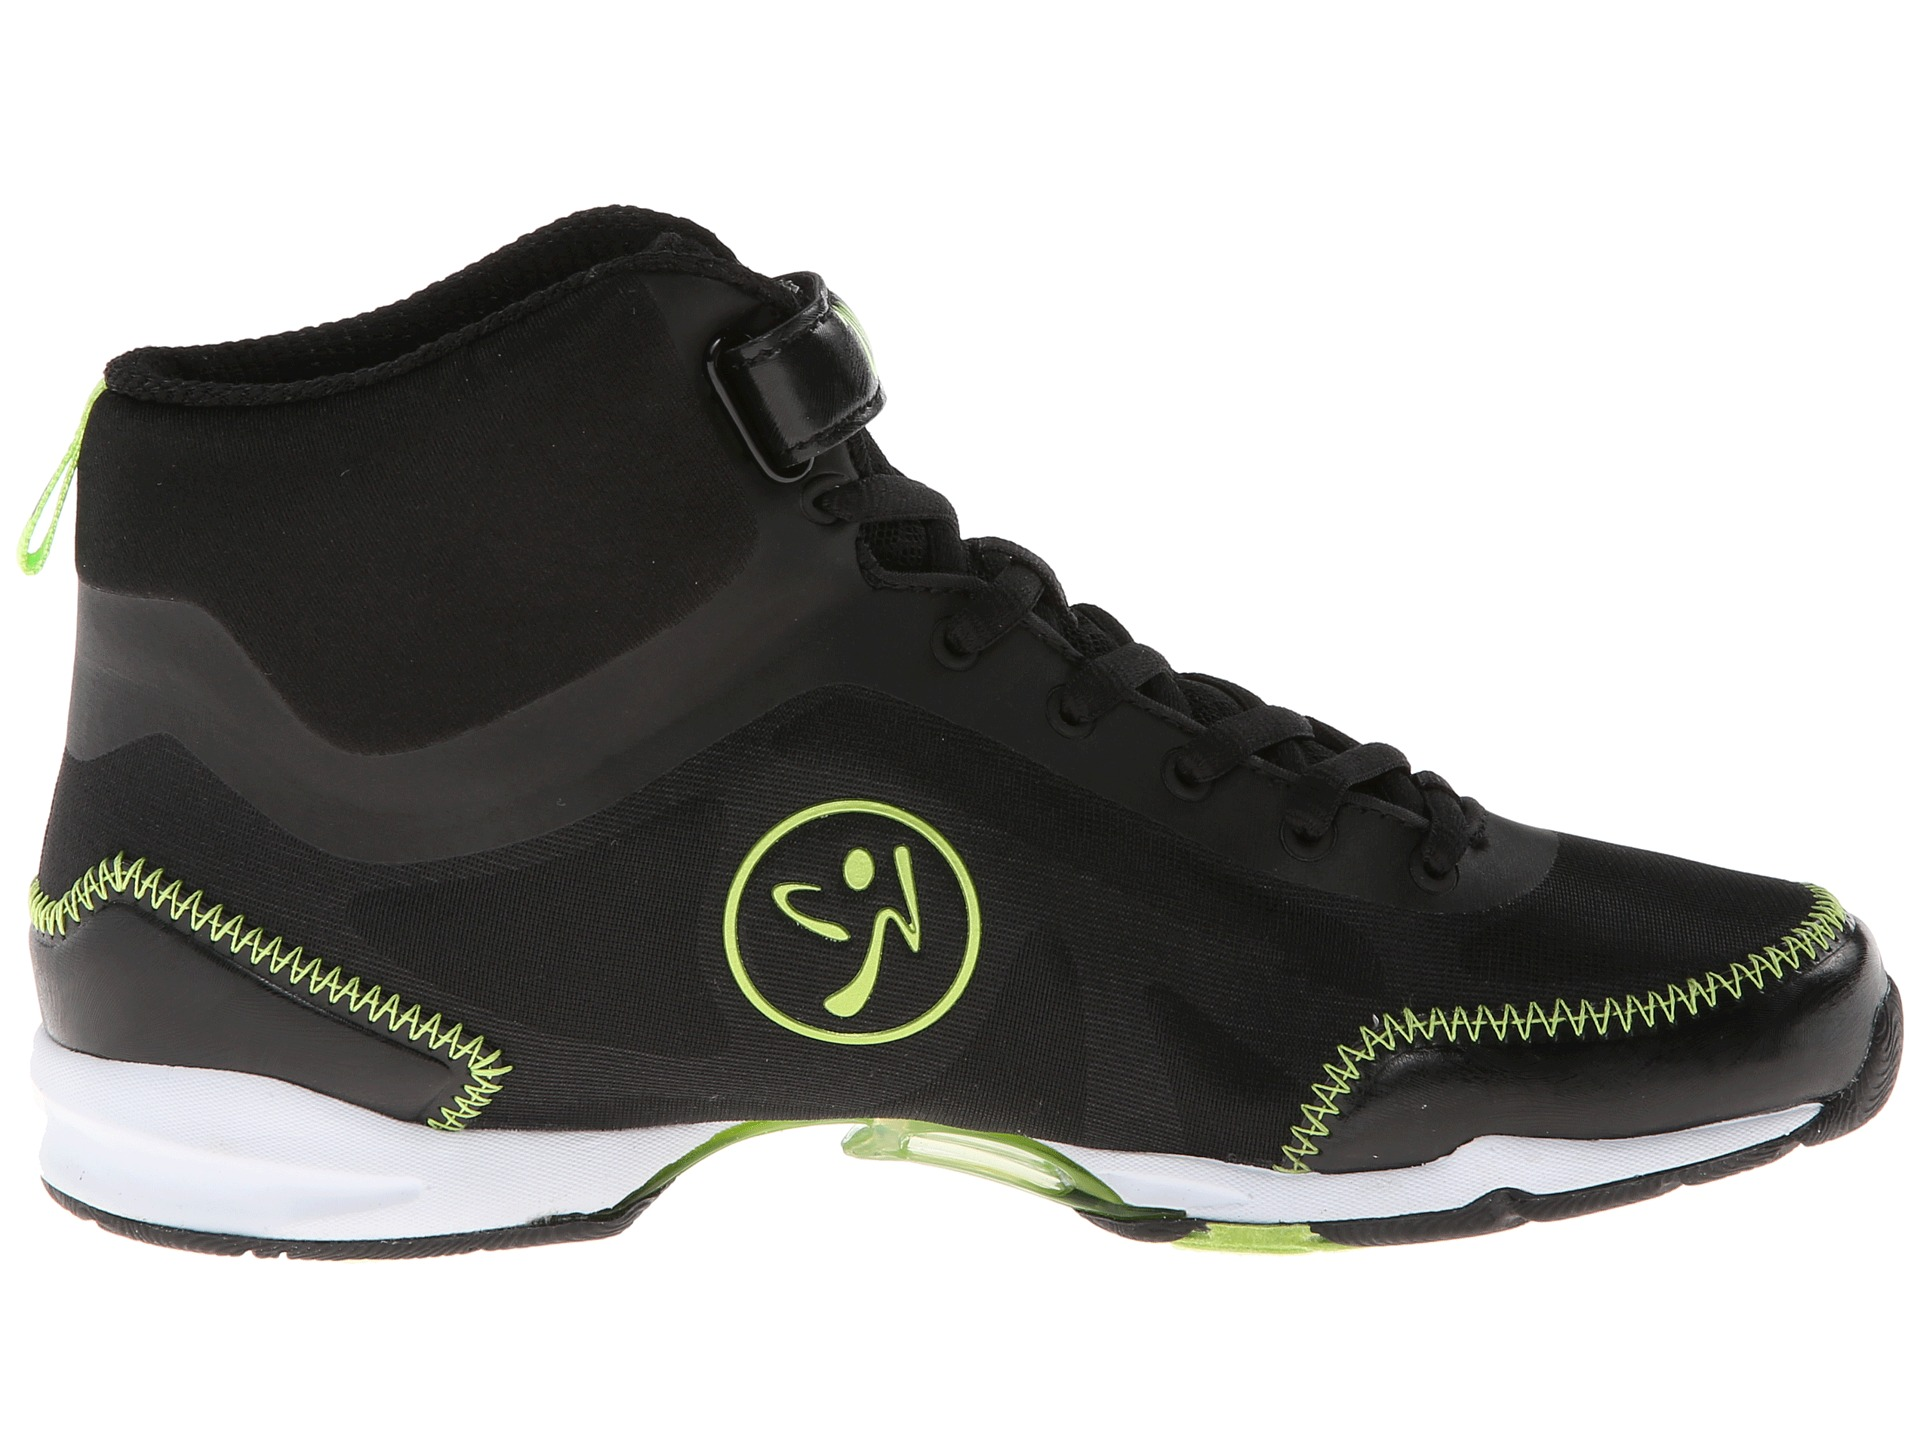 Zumba Flex Classic High Shipped Free At Zappos